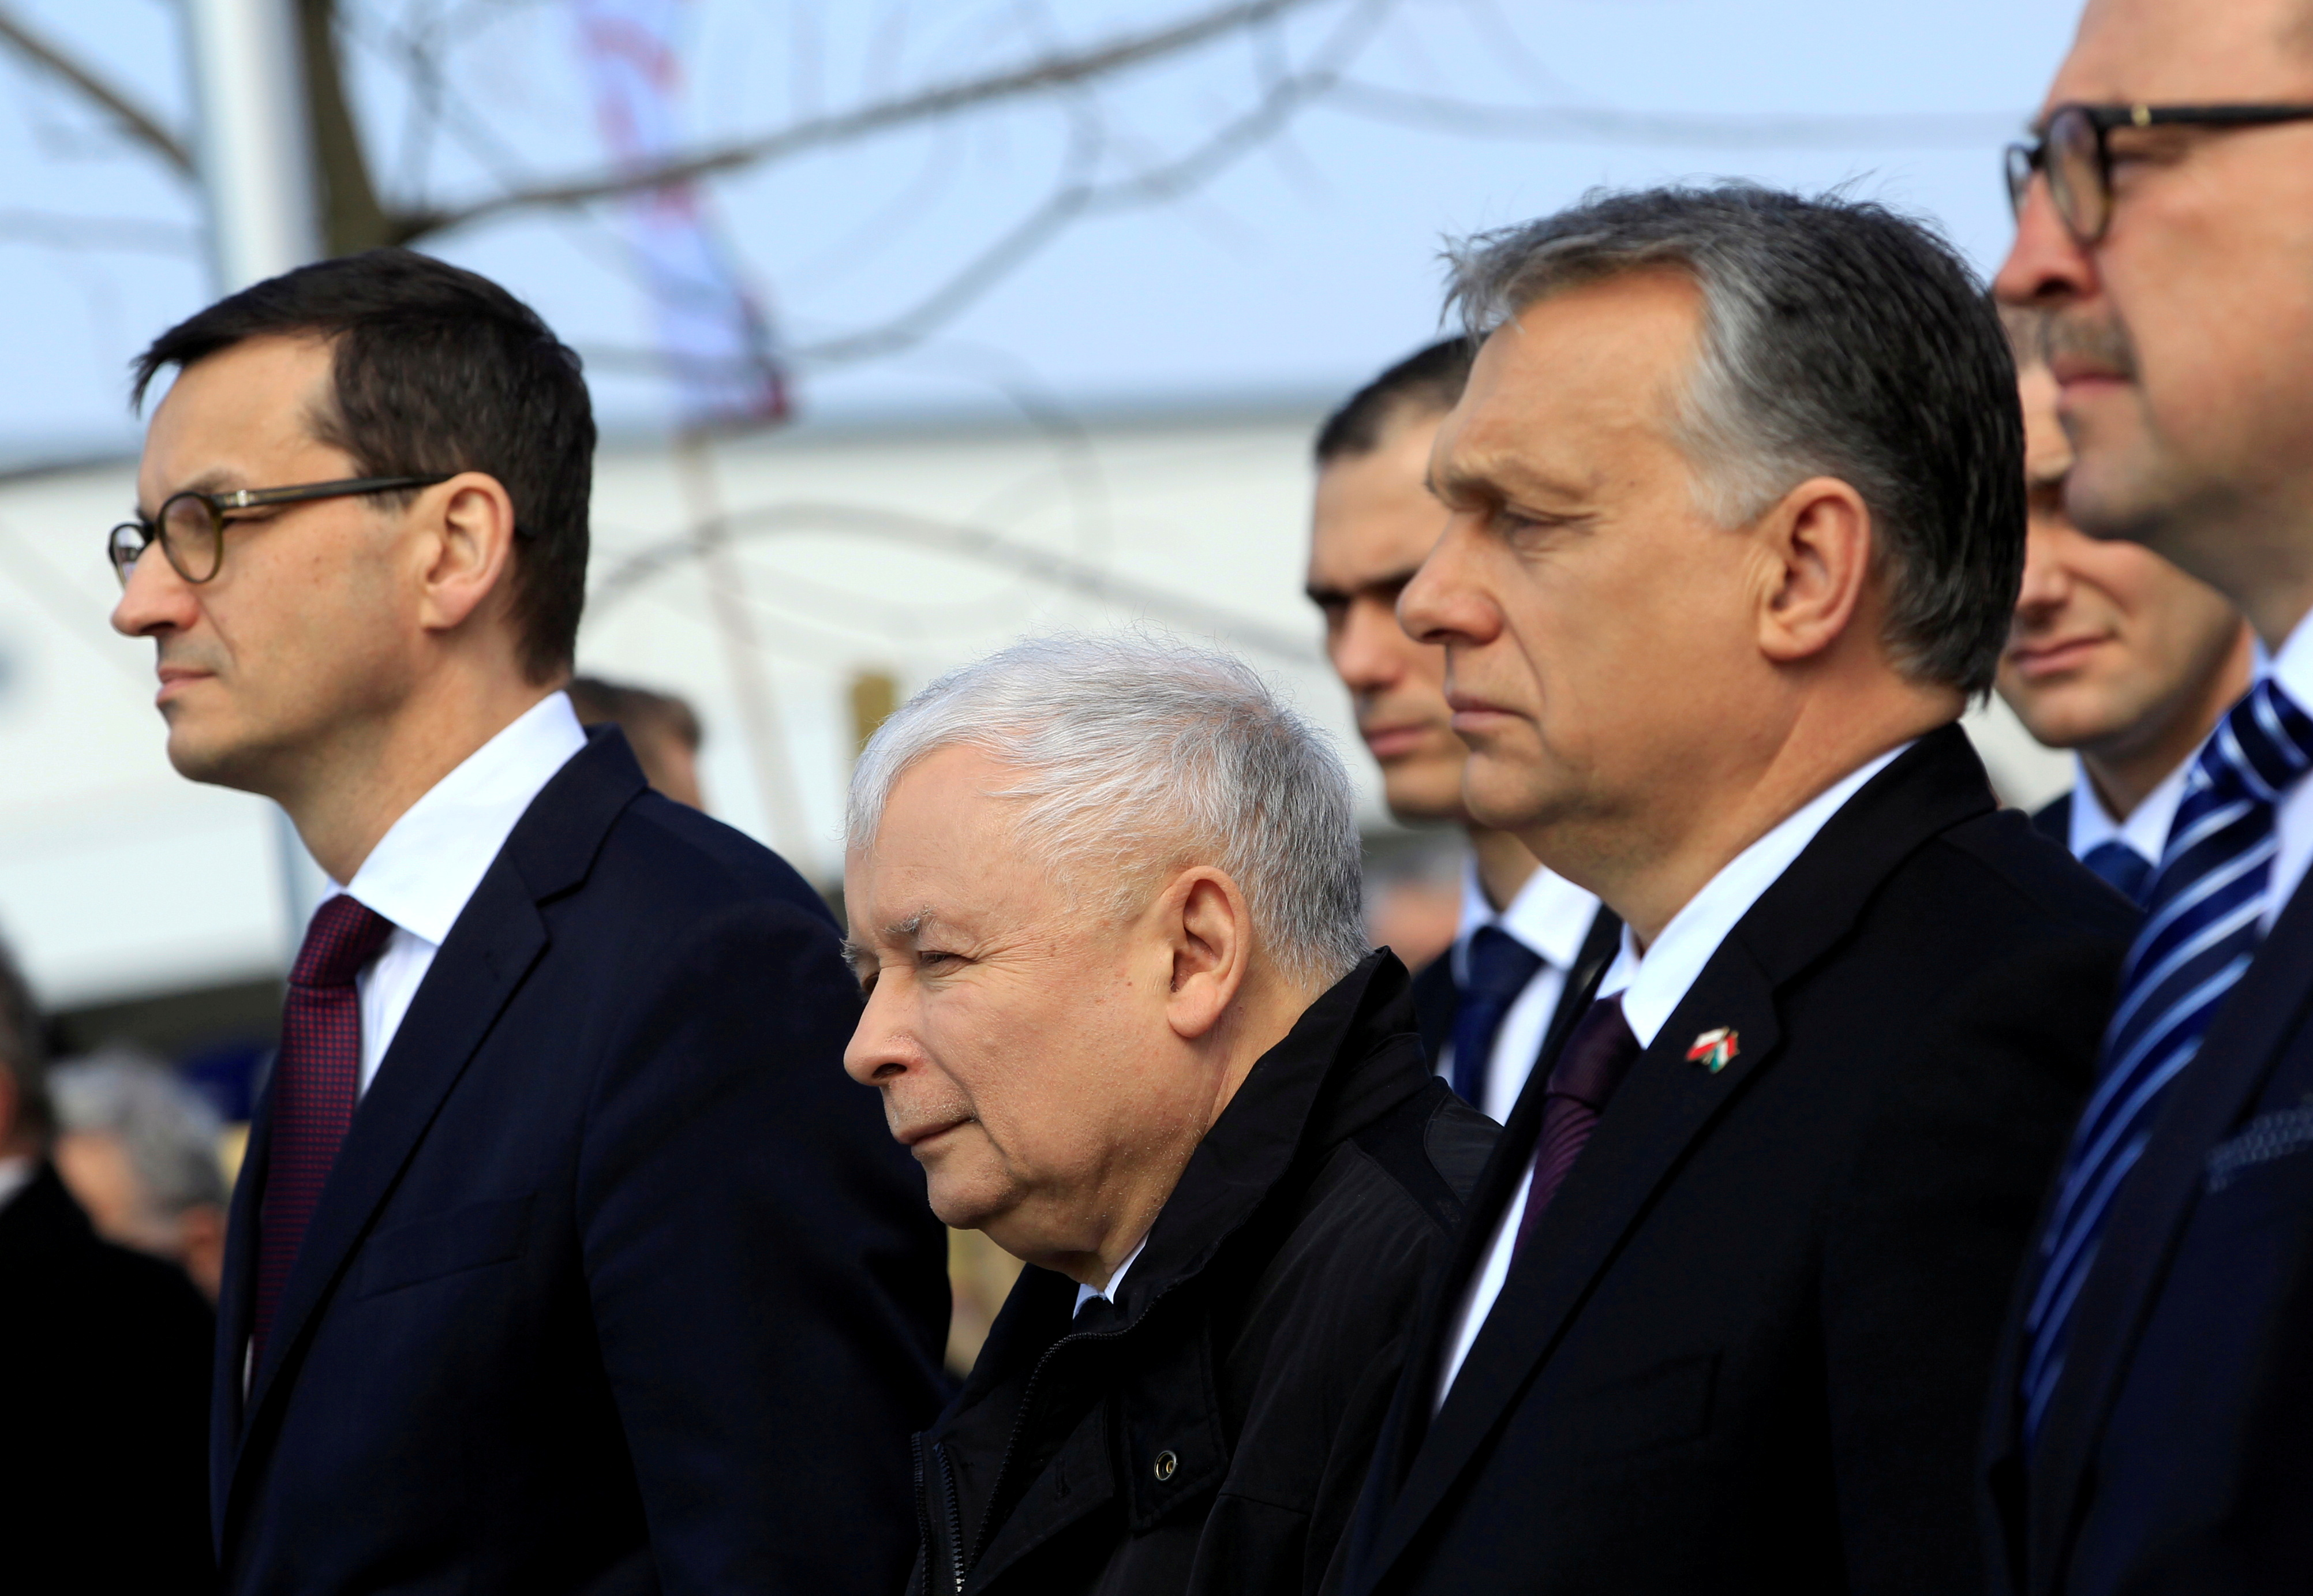 """Poland, Hungary block """"gender equality"""" from EU social summit 